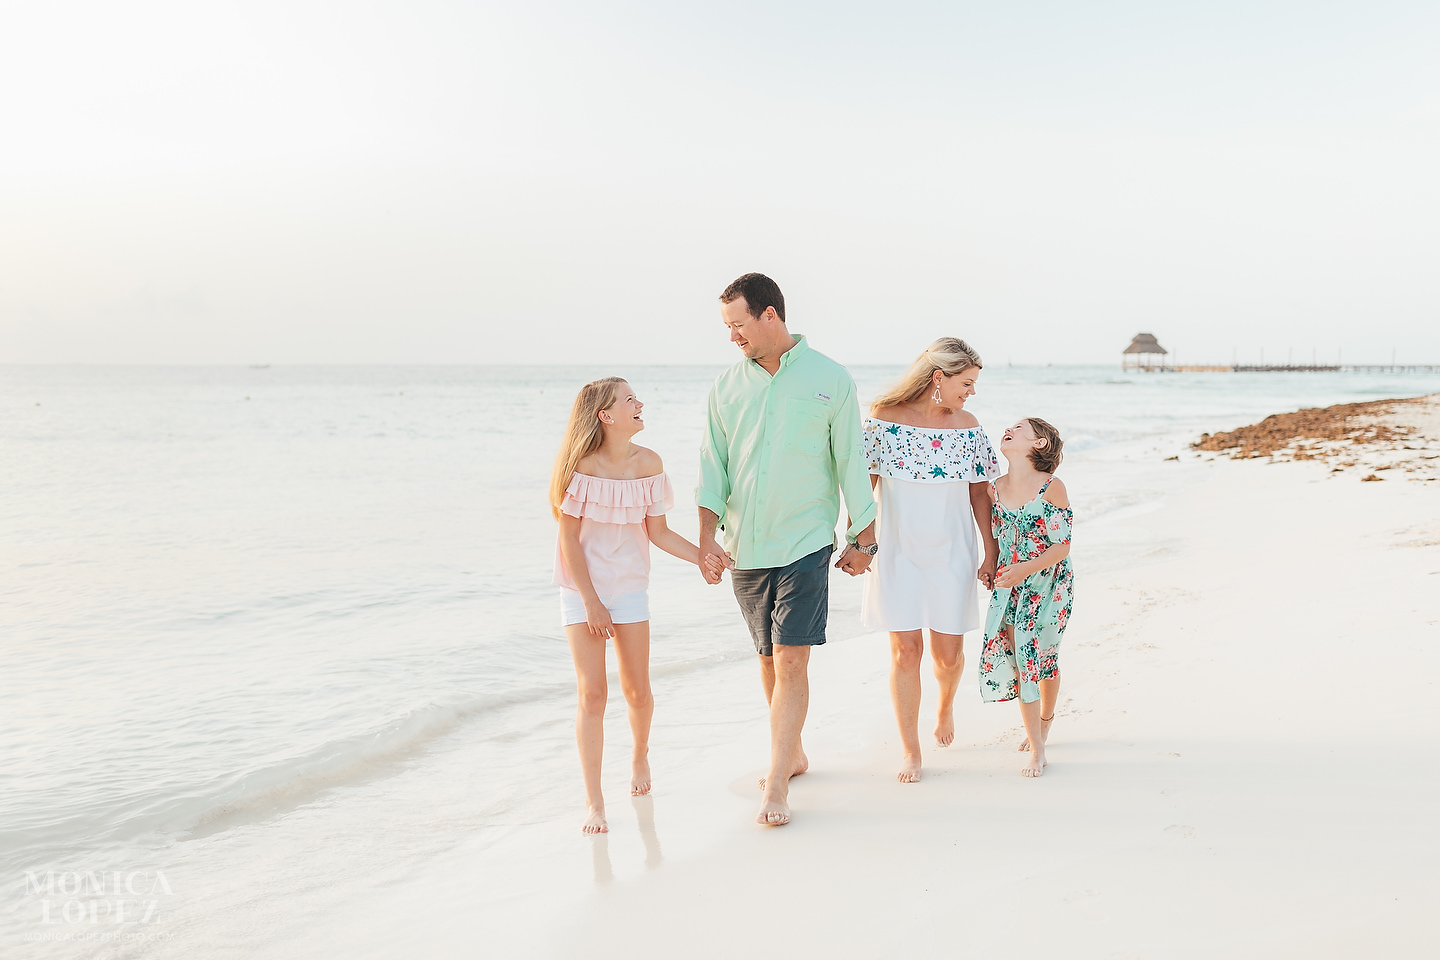 Isla Mujeres Family Portraits by Monica Lopez Photography